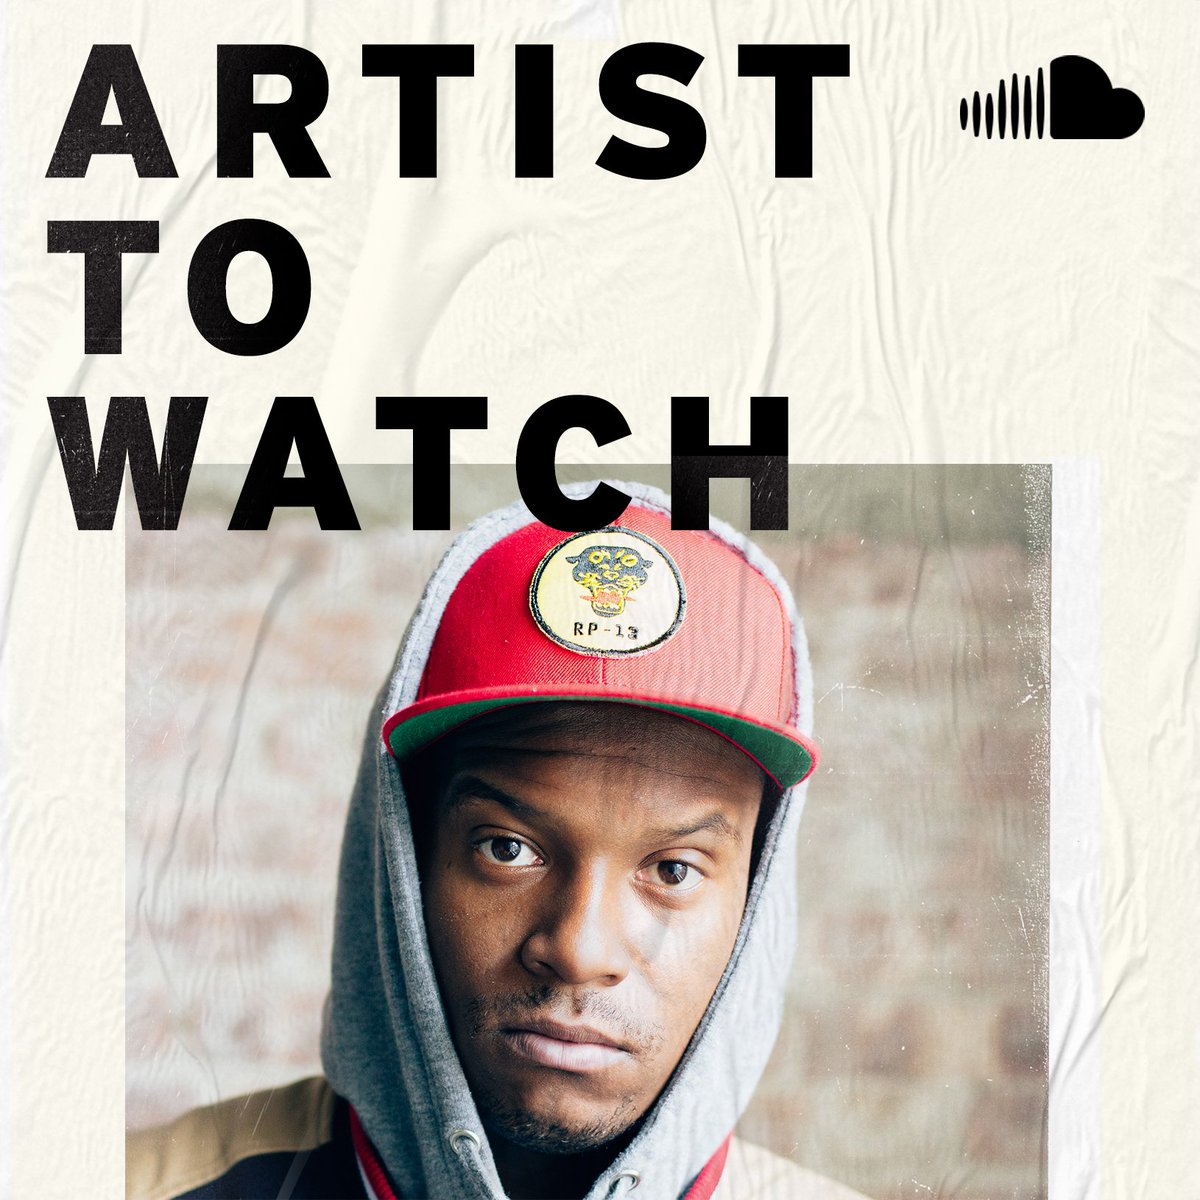 Repping Grizzly City and hoping to see you on the #Starting5Tour, get to know: @fashawn 🐻 Who is going to the show in Seattle tonight? http://bit.ly/2SwtKsh